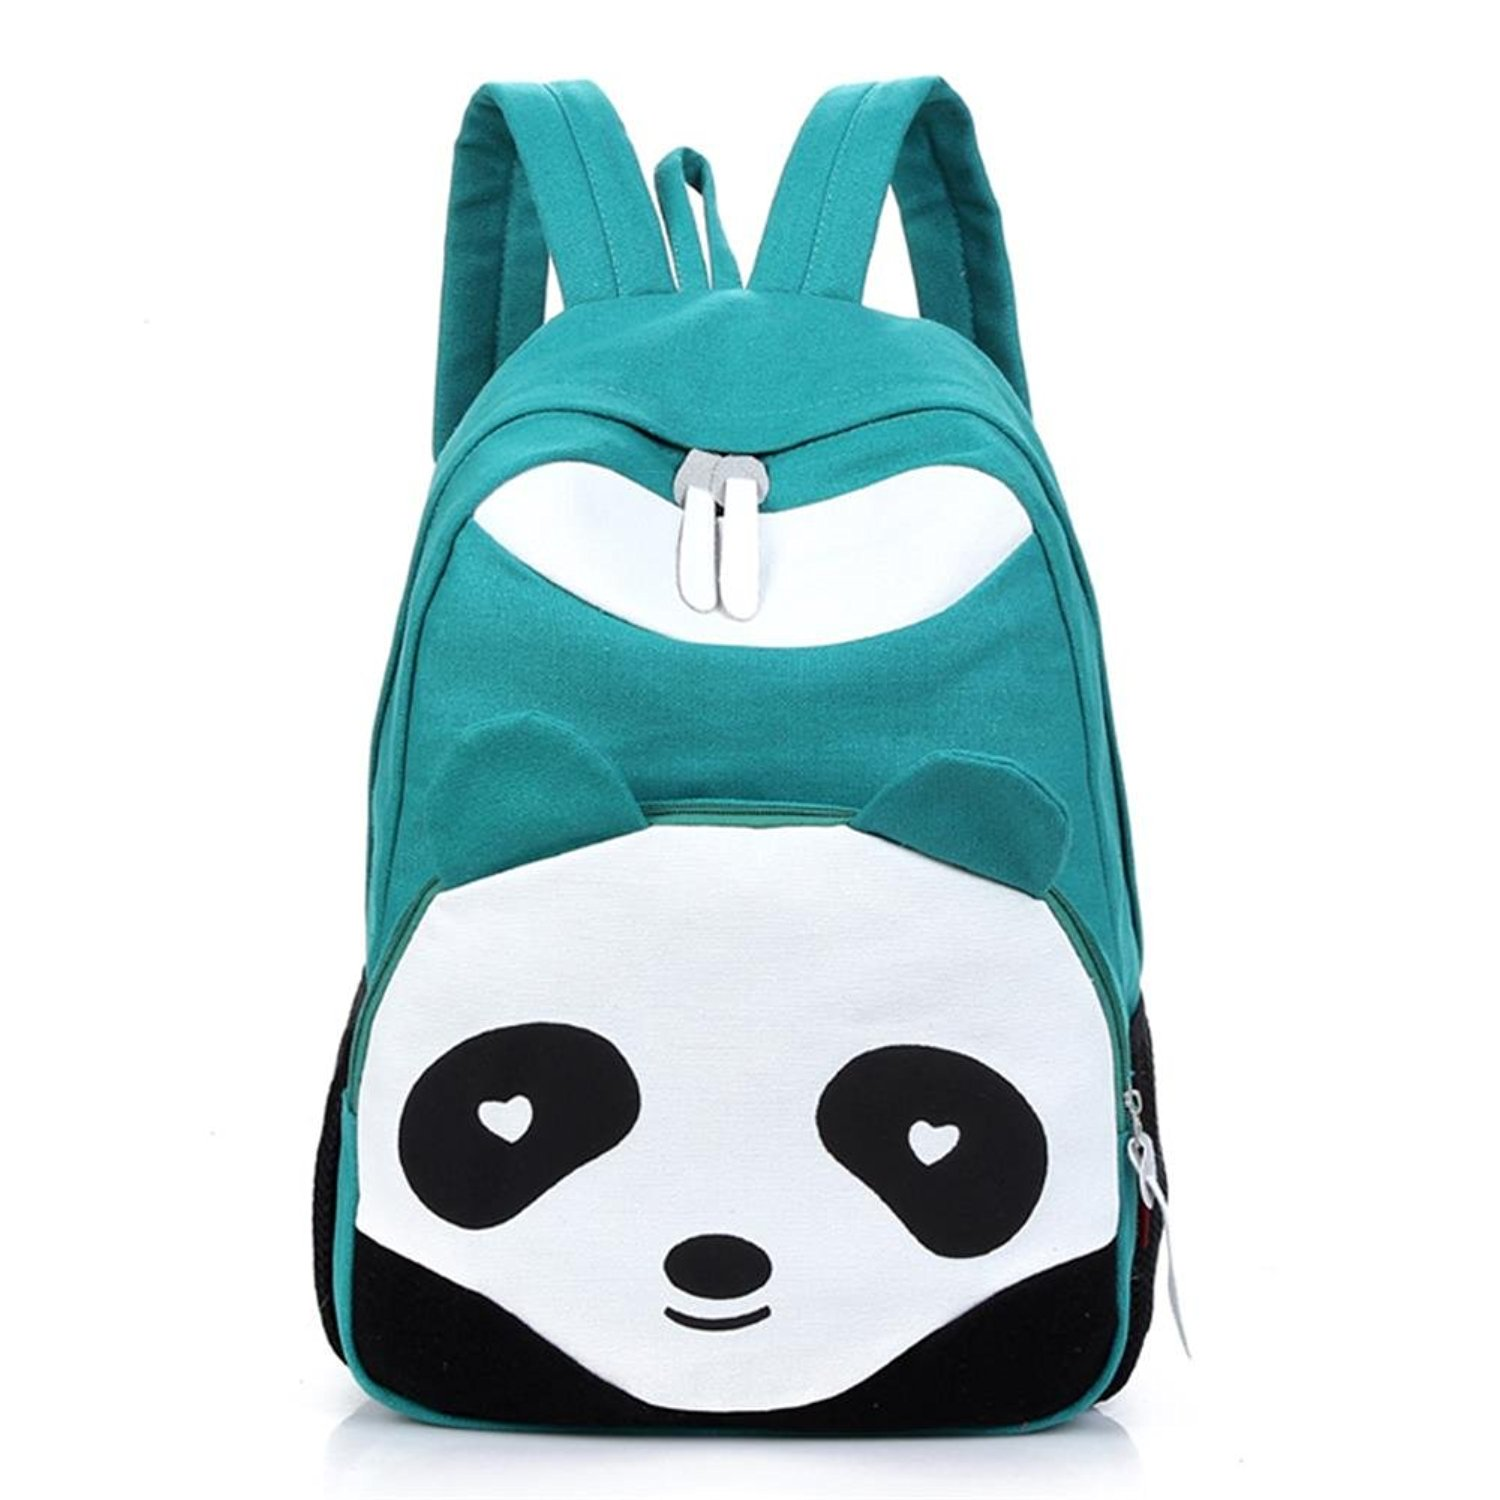 ec270795b0 Get Quotations · Cute Panda Unisex Canvas Backpack School Bag College  Laptop Bags Rucksack for Teens Girls Boys Students